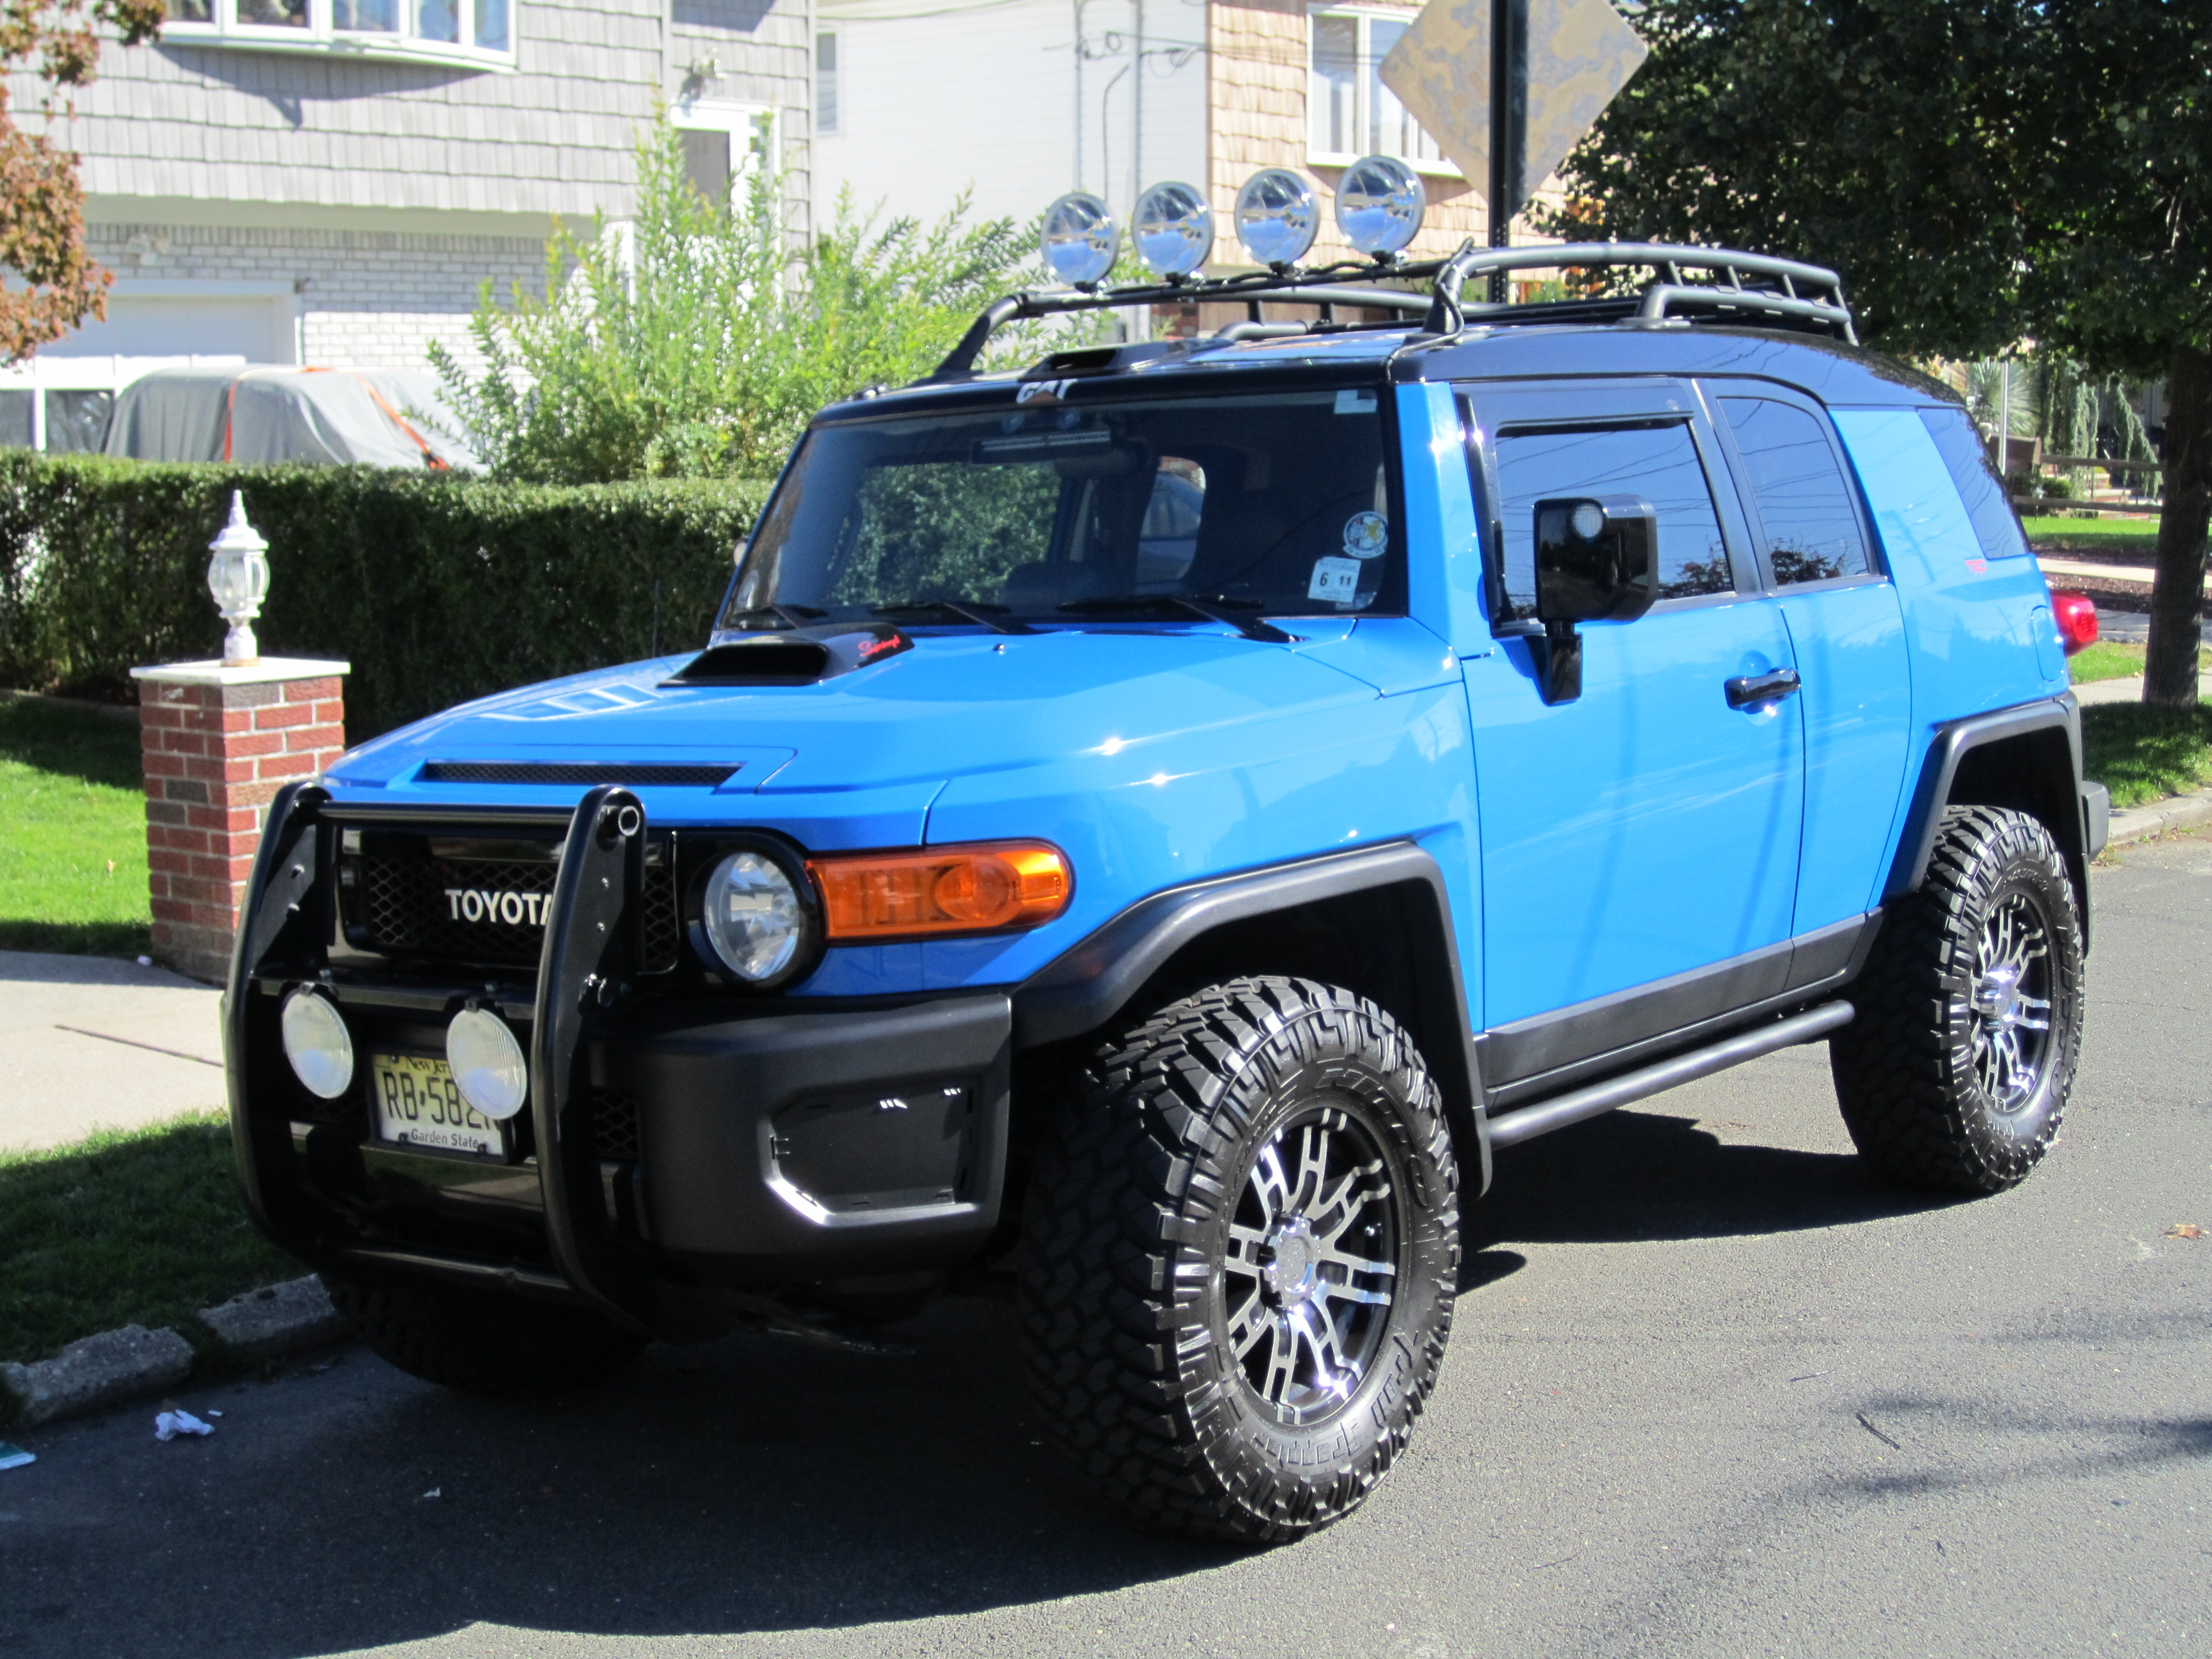 FJRAO08 2008 Toyota FJ Cruiser Specs Photos Modification Info at